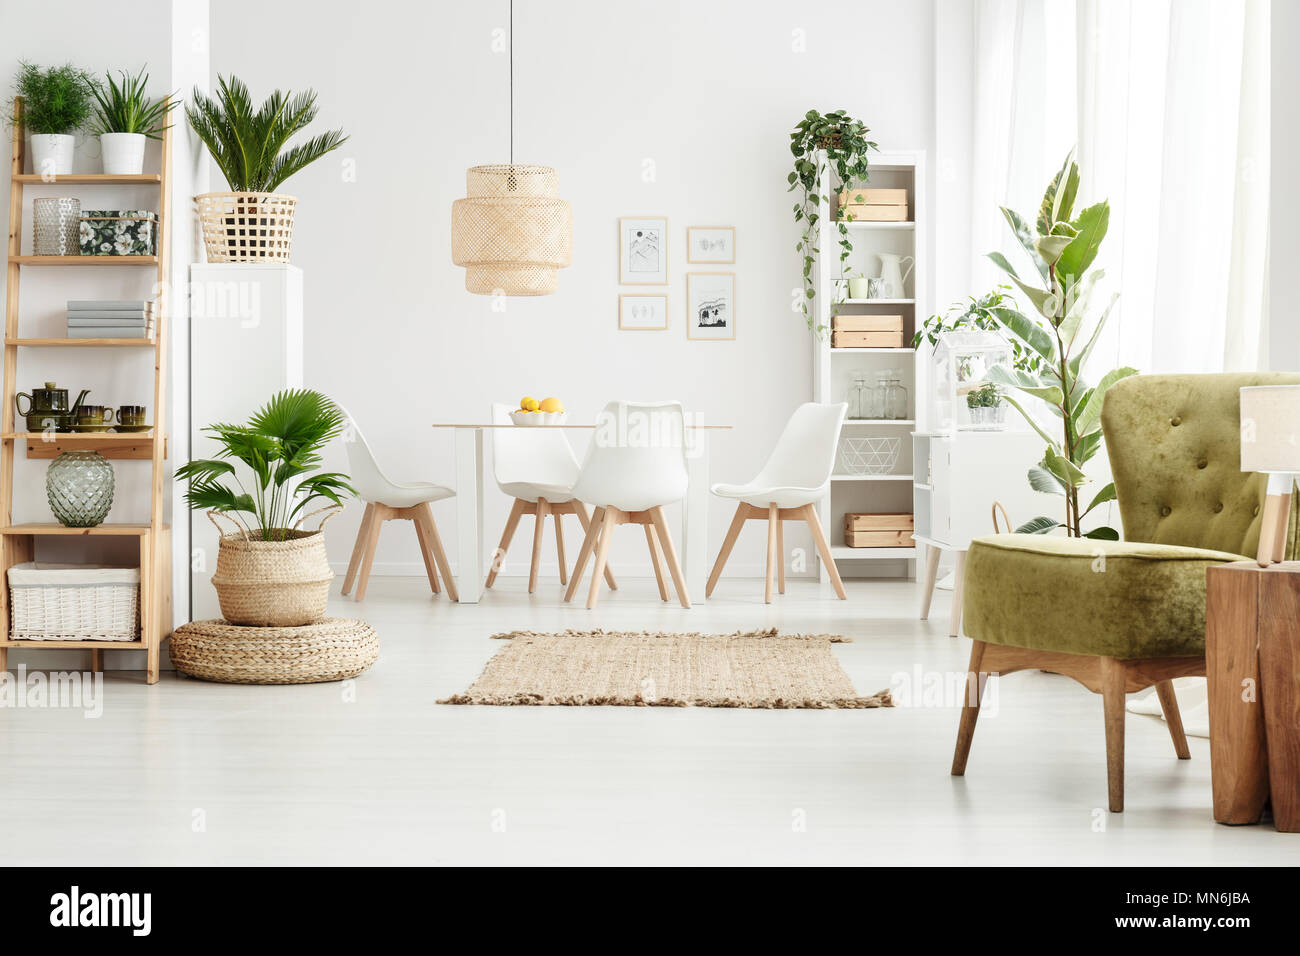 Lamp On Wooden Stool And Green Armchair In Multifunctional Dining Room  Interior With Pouf, Plants And Brown Rug